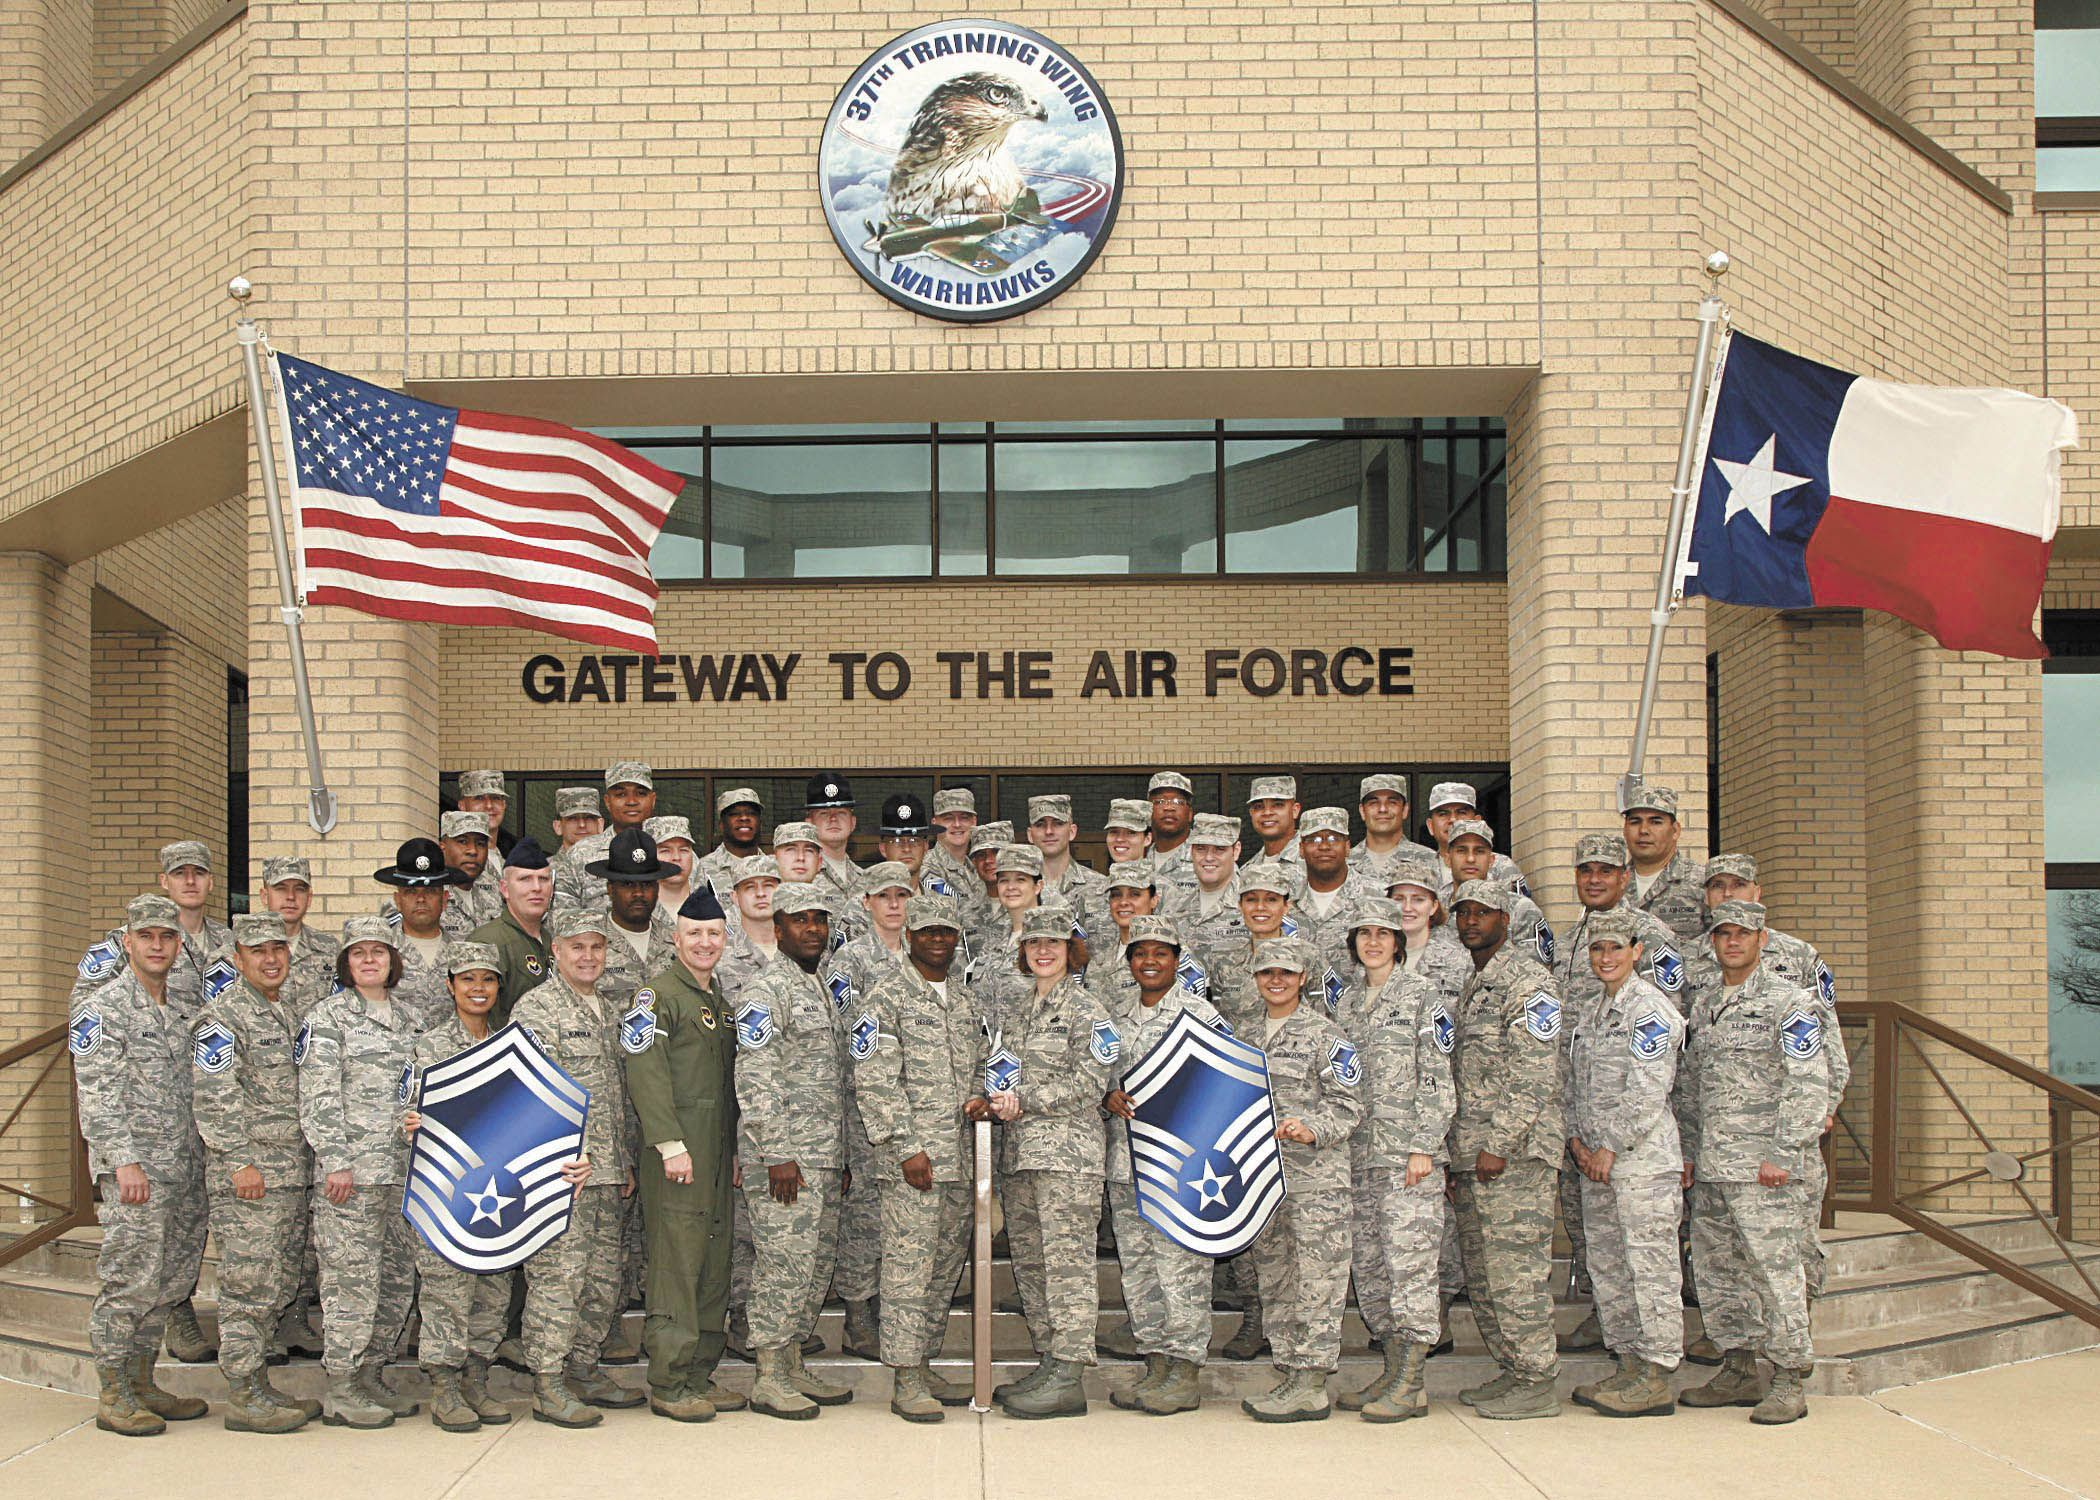 to Lackland AFB, Gateway to the Air Force. I went